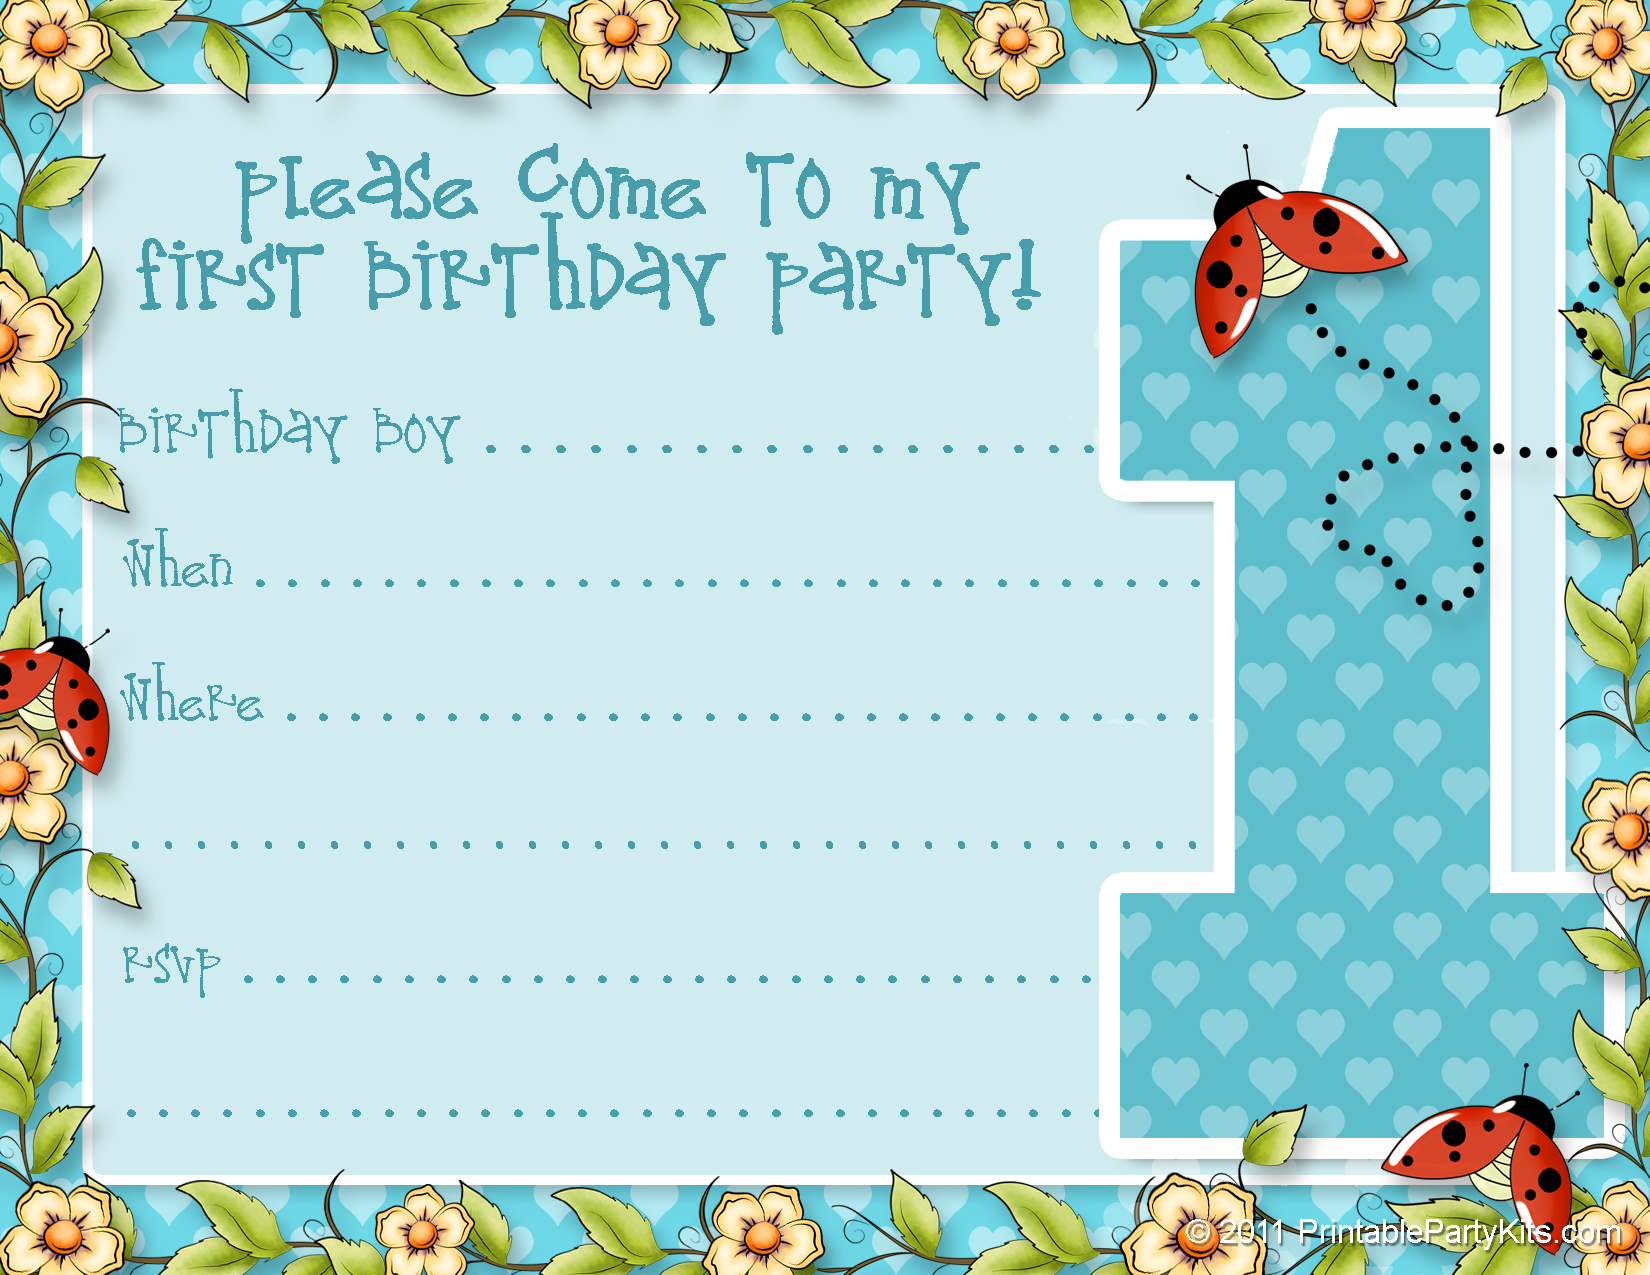 50 Free Birthday Invitation Templates You Will Love These – Free Birthday Template Invitations